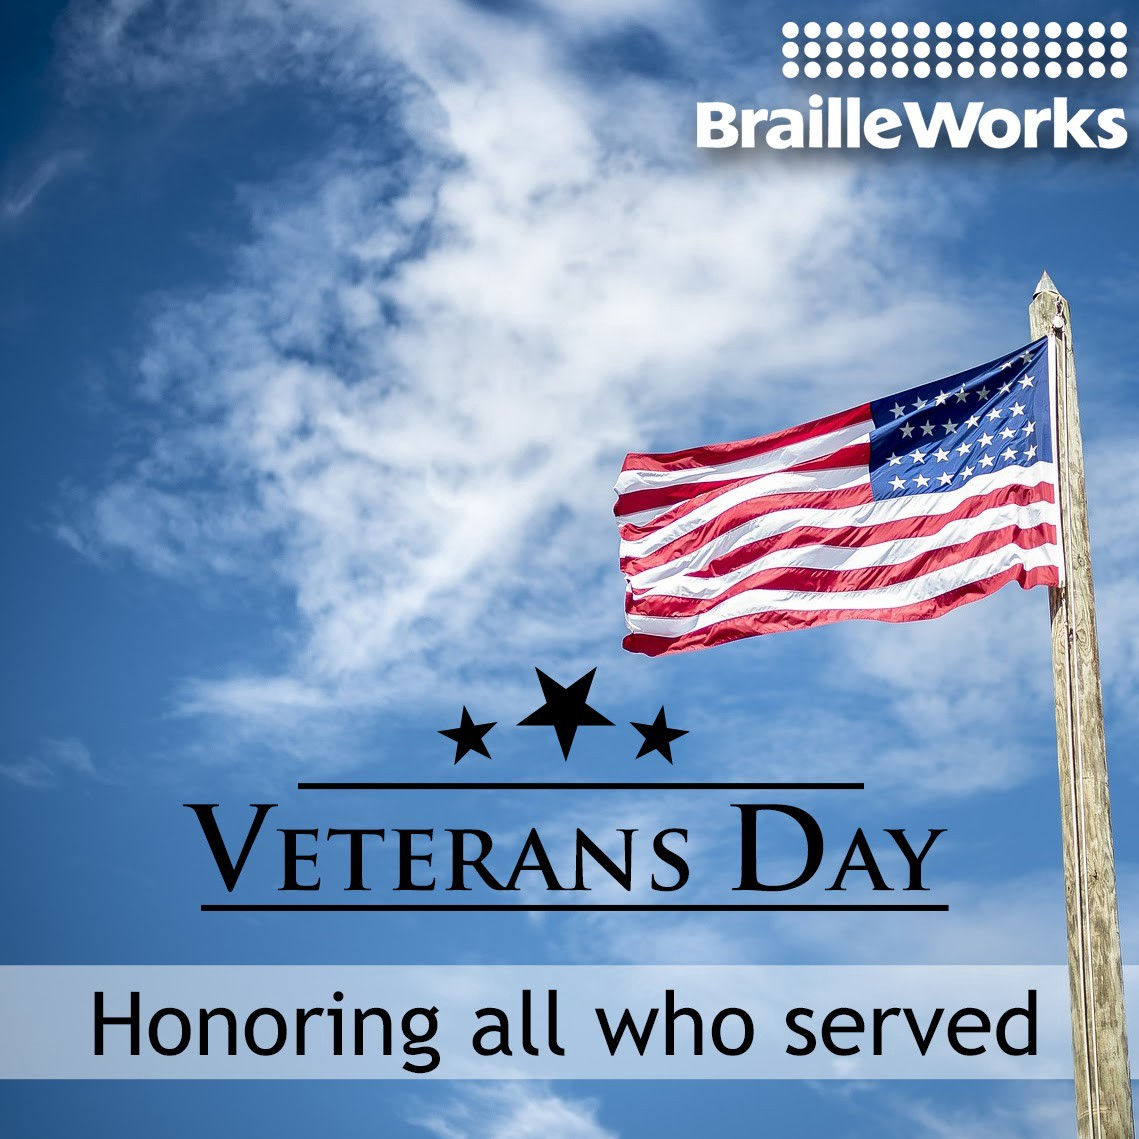 """American flag on a wooden pole waving in a lightly clouded sky with the words """"Veterans Day Honoring all who served"""" and logo"""